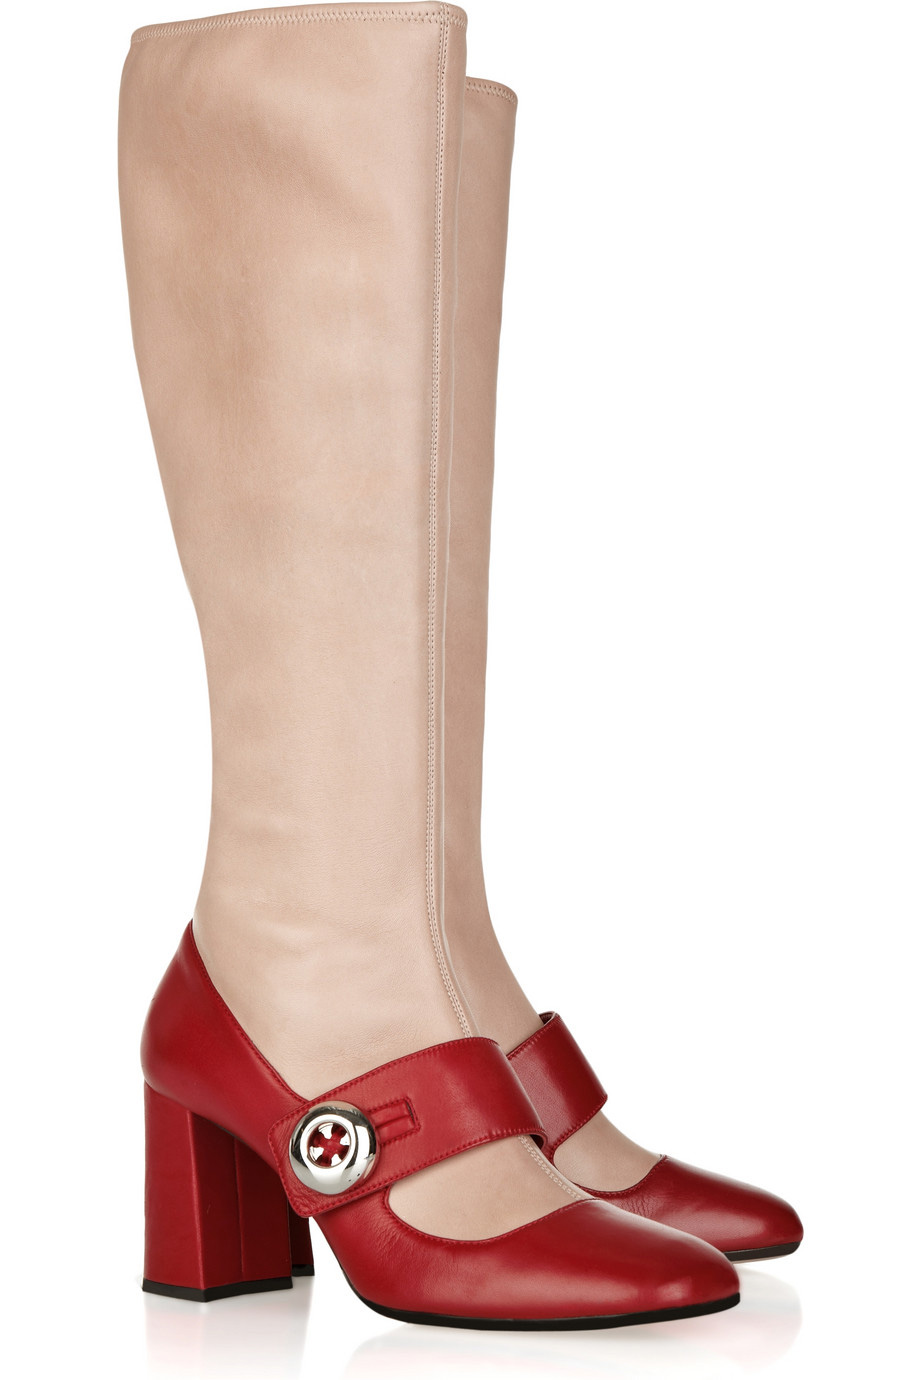 Red and leather Mary Jane boots by Prada